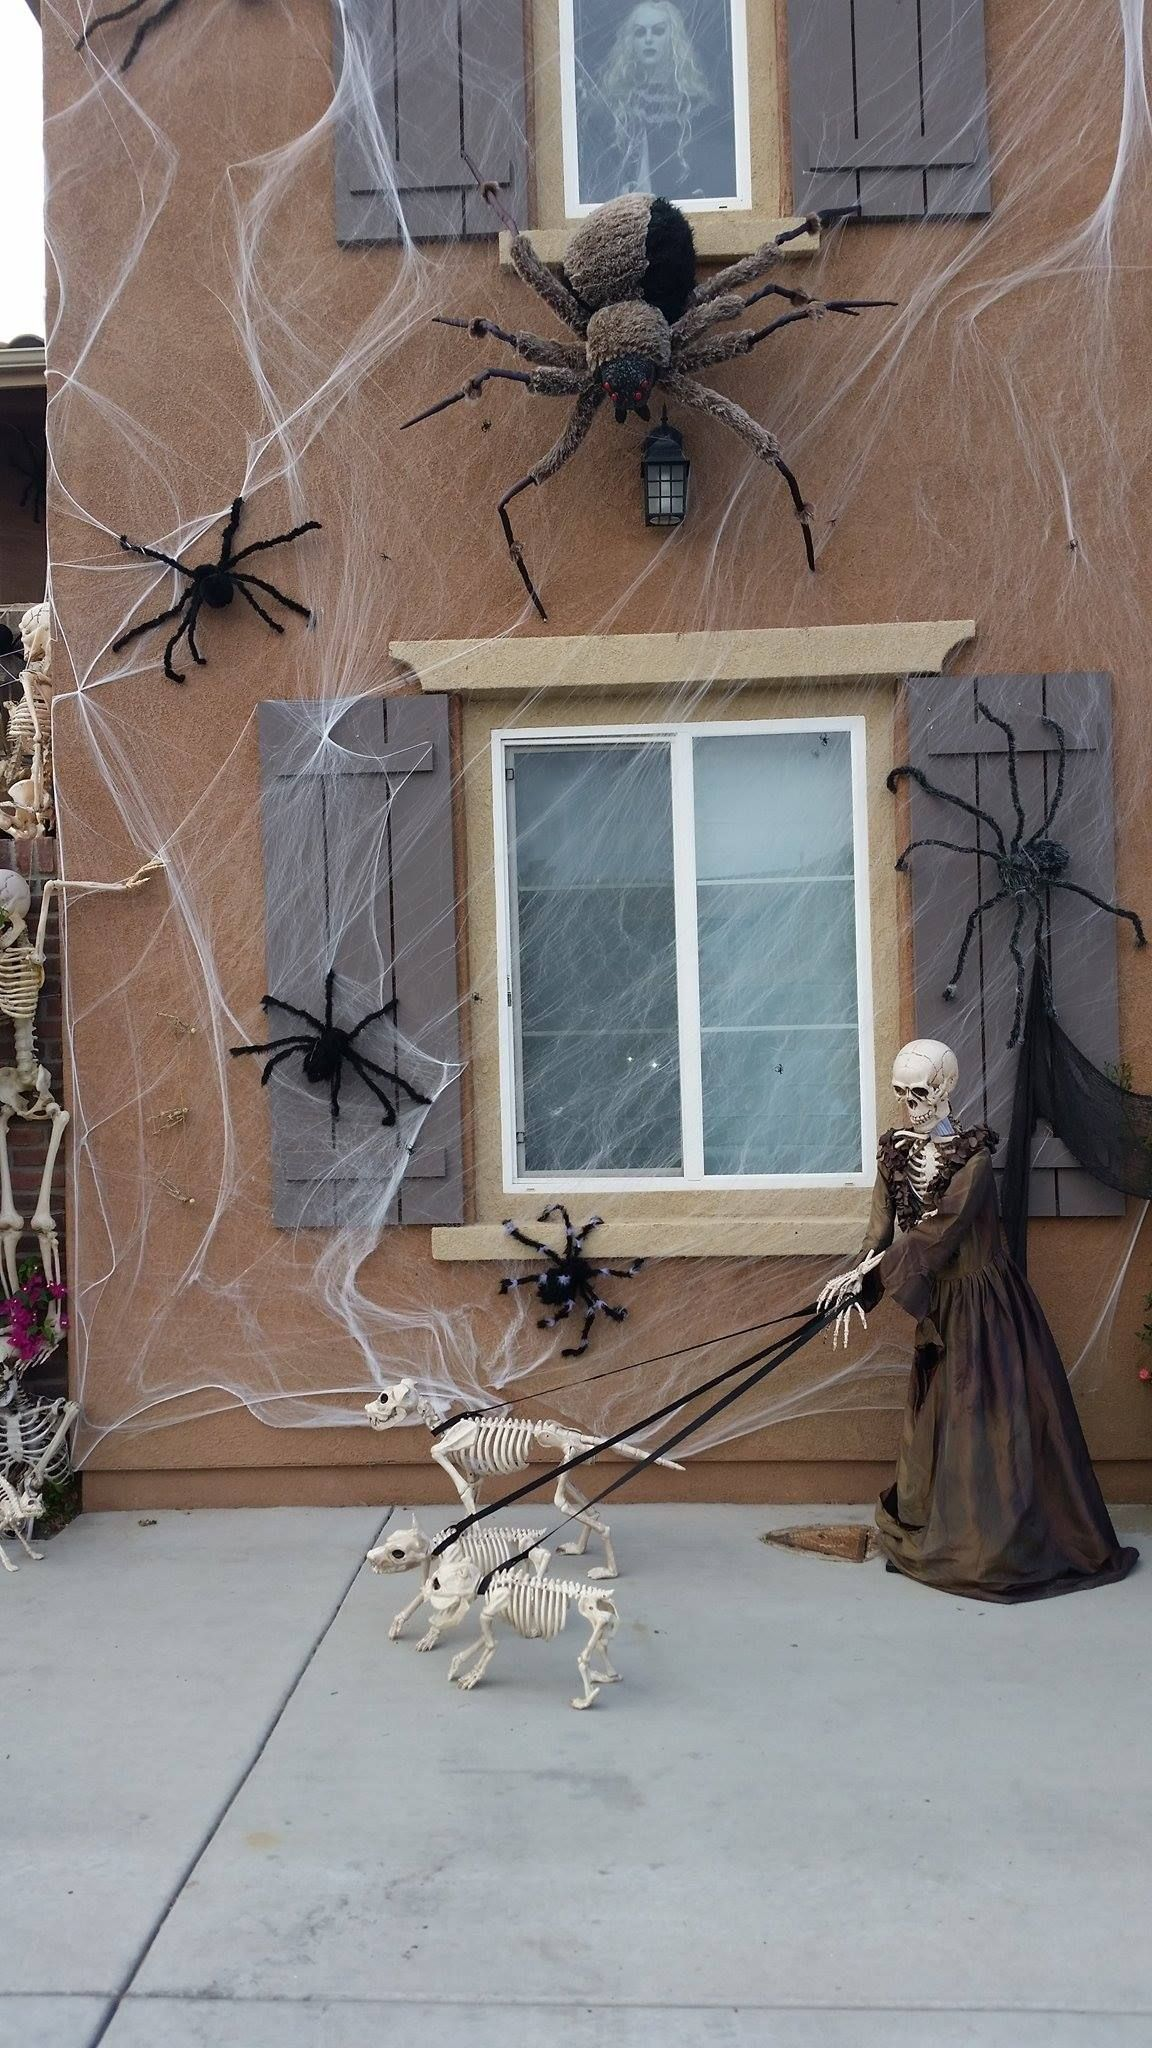 32167d2392f81e346a672135dff06a1fjpg 1,152×2,048 pixels Halloween - Pinterest Halloween Decorations